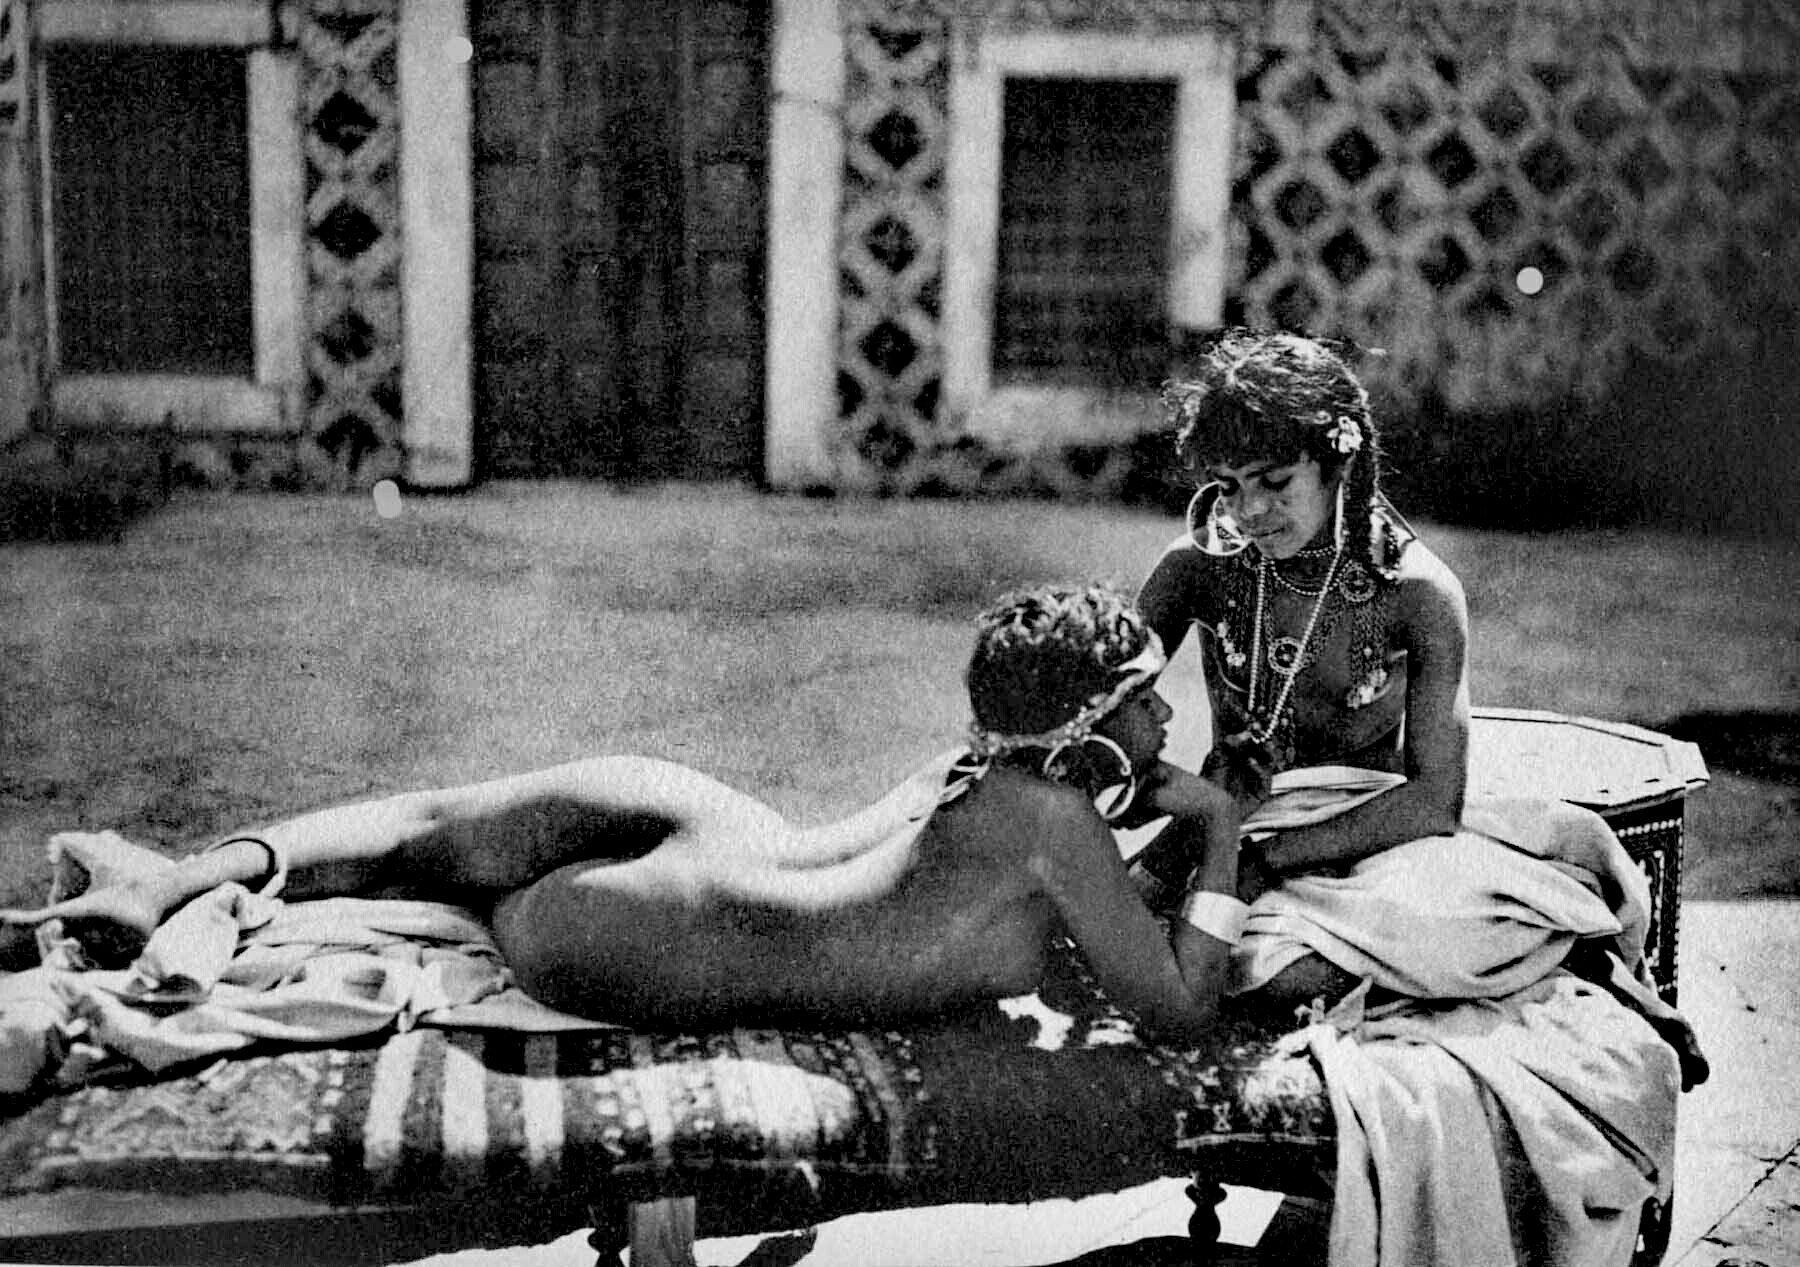 How women lived in oriental harems, or What they don't talk about in romantic films